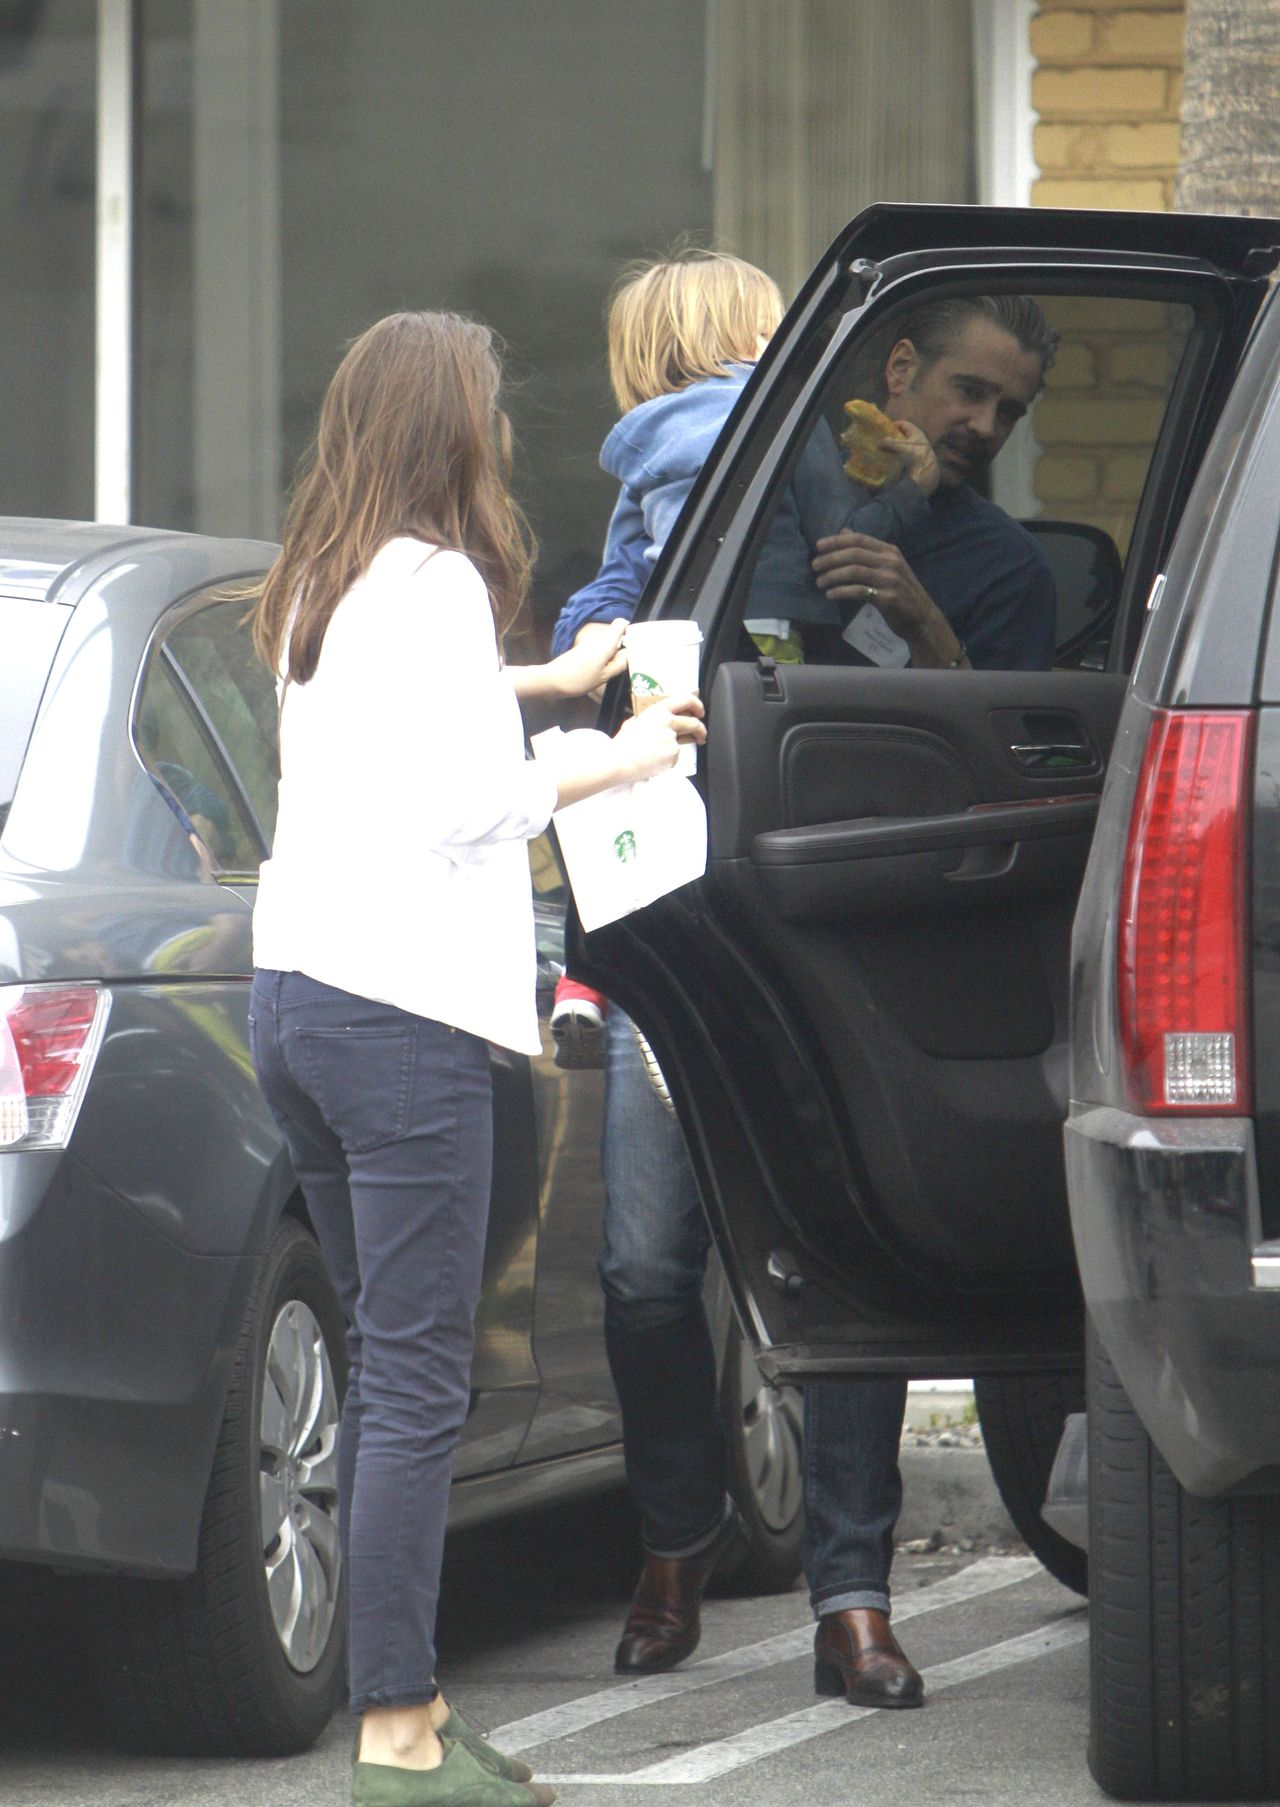 EXC: COLIN FARRELL LEAVING A STARBUCKS COFFEE SHOP IN LOS ANGELES.  / XPUSAM